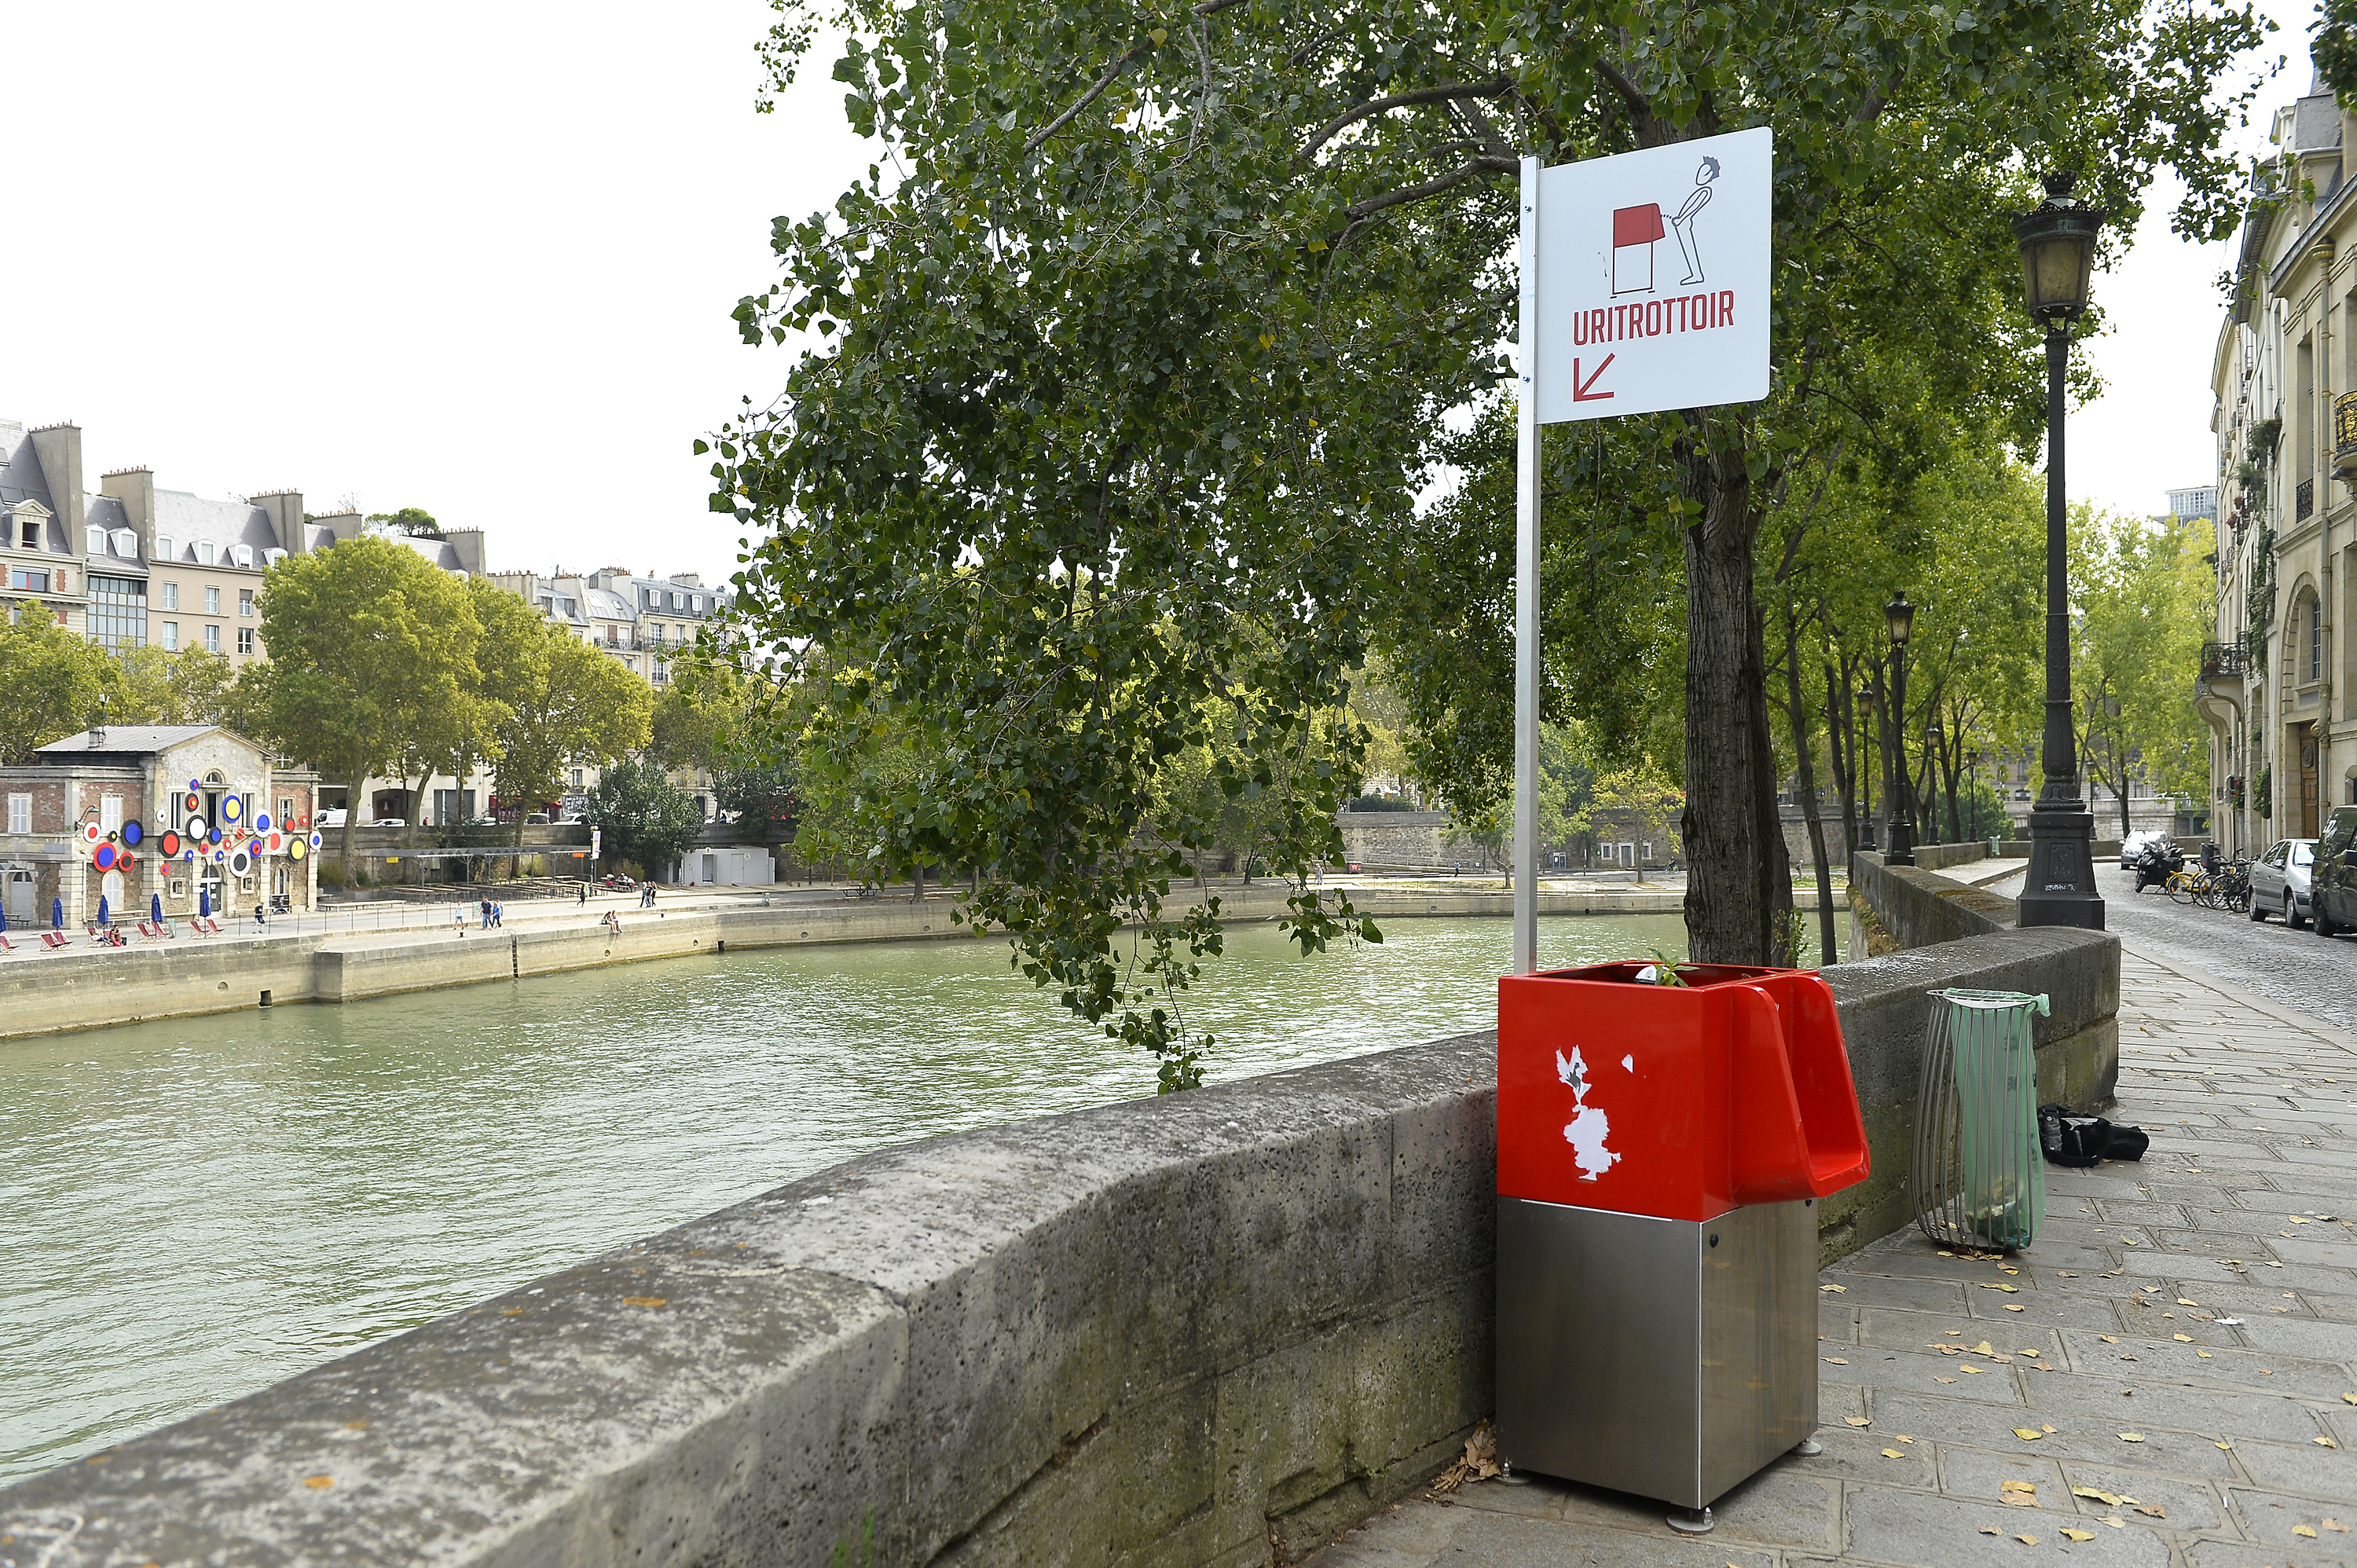 A view of a local public urinal on Ile Saint Louis along the river Seine on August 14, 2018 in Paris, France. The eco-friendly Uritrottoir public urinals are have caused controversy among local residents who have asked Paris City Hall to remove them.  (Photo by Aurelien Meunier/Getty Images)